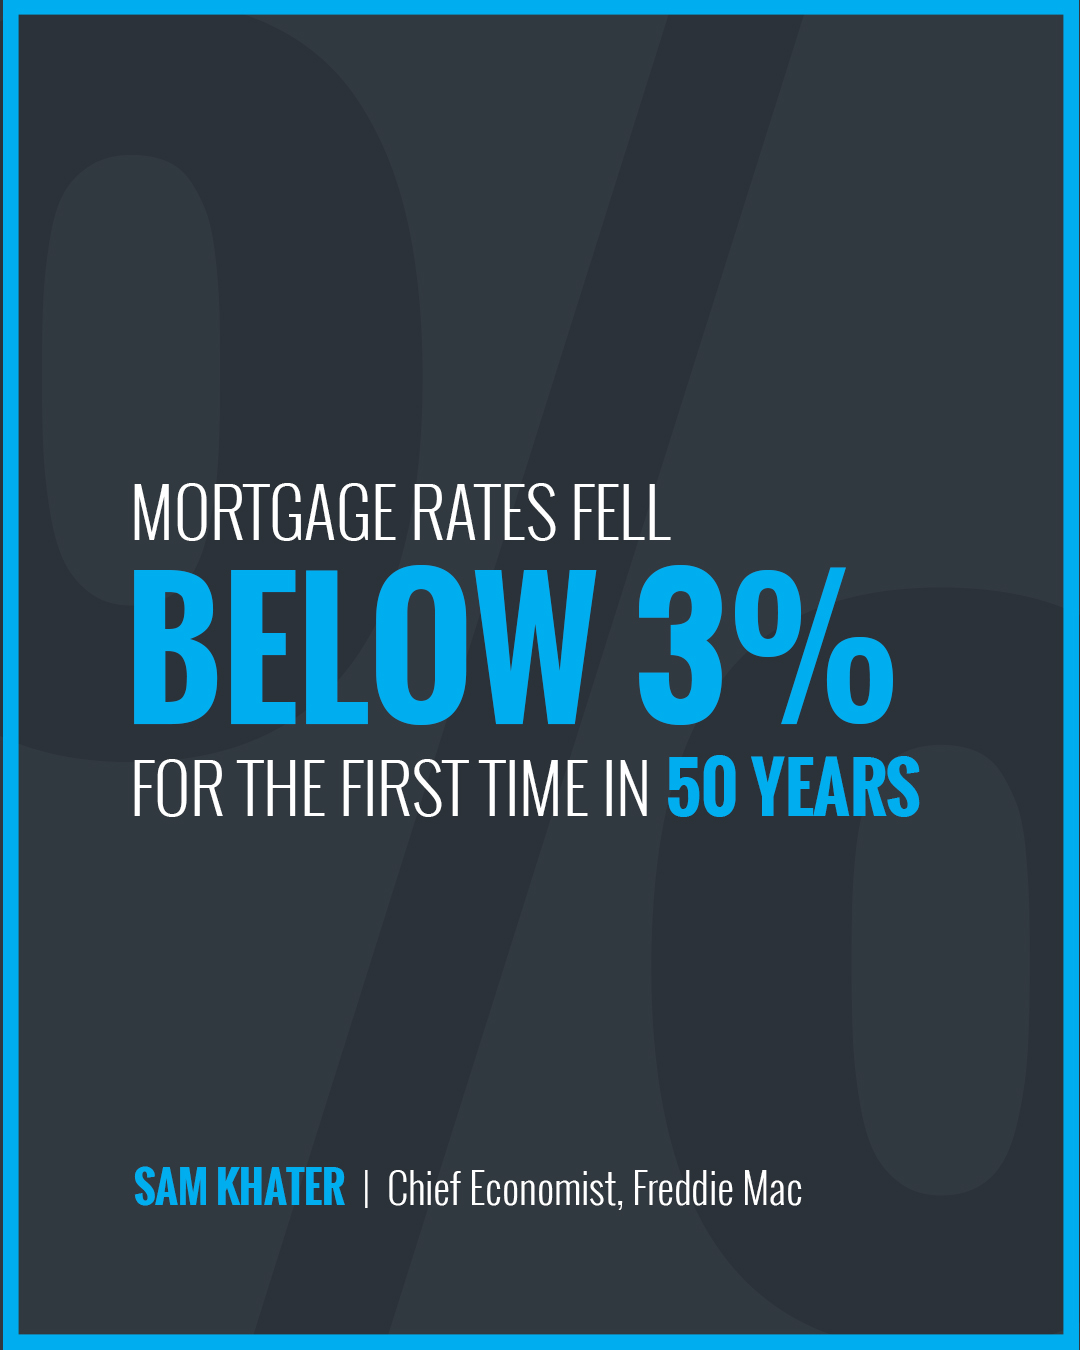 Mortgage Rates Fall Below 3% [INFOGRAPHIC] | Bridge Builders